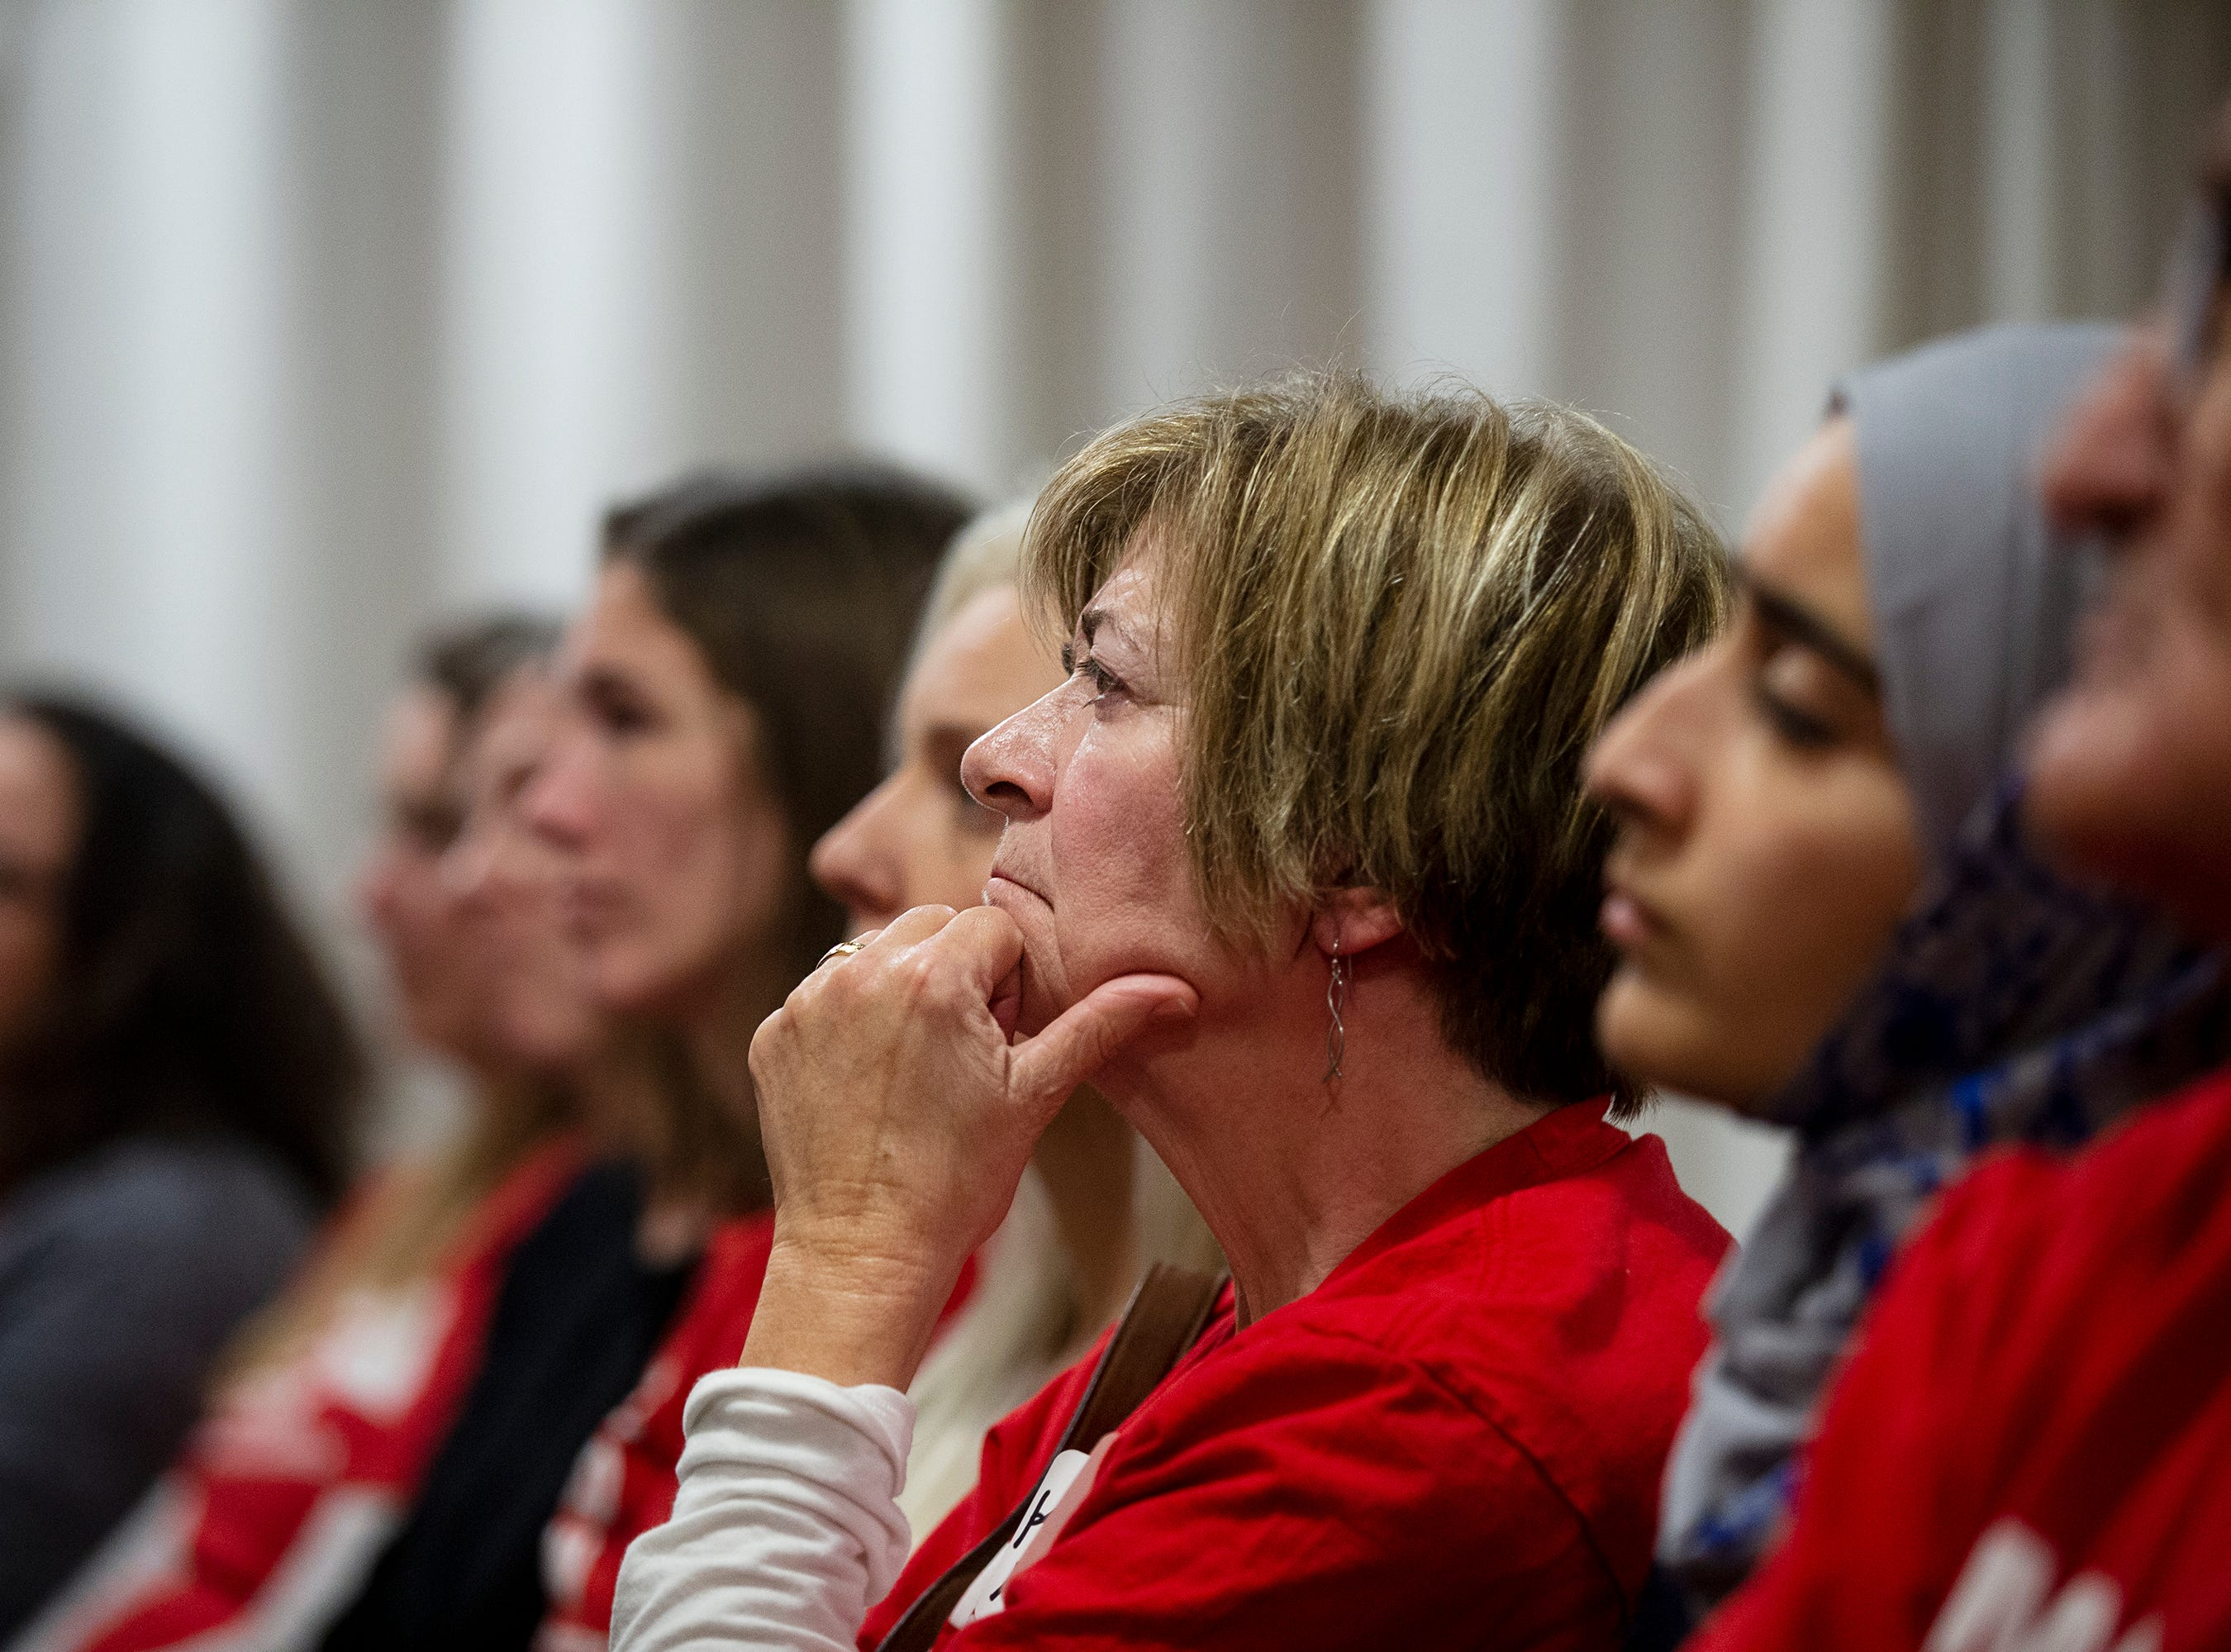 A woman listens to Former New York City Mayor Michael Bloomberg as he speaks to the crowd gathered at an Iowa Moms Demand Action member meeting on Tuesday, Dec. 4, 2018, at the Iowa Taproom in Des Moines.